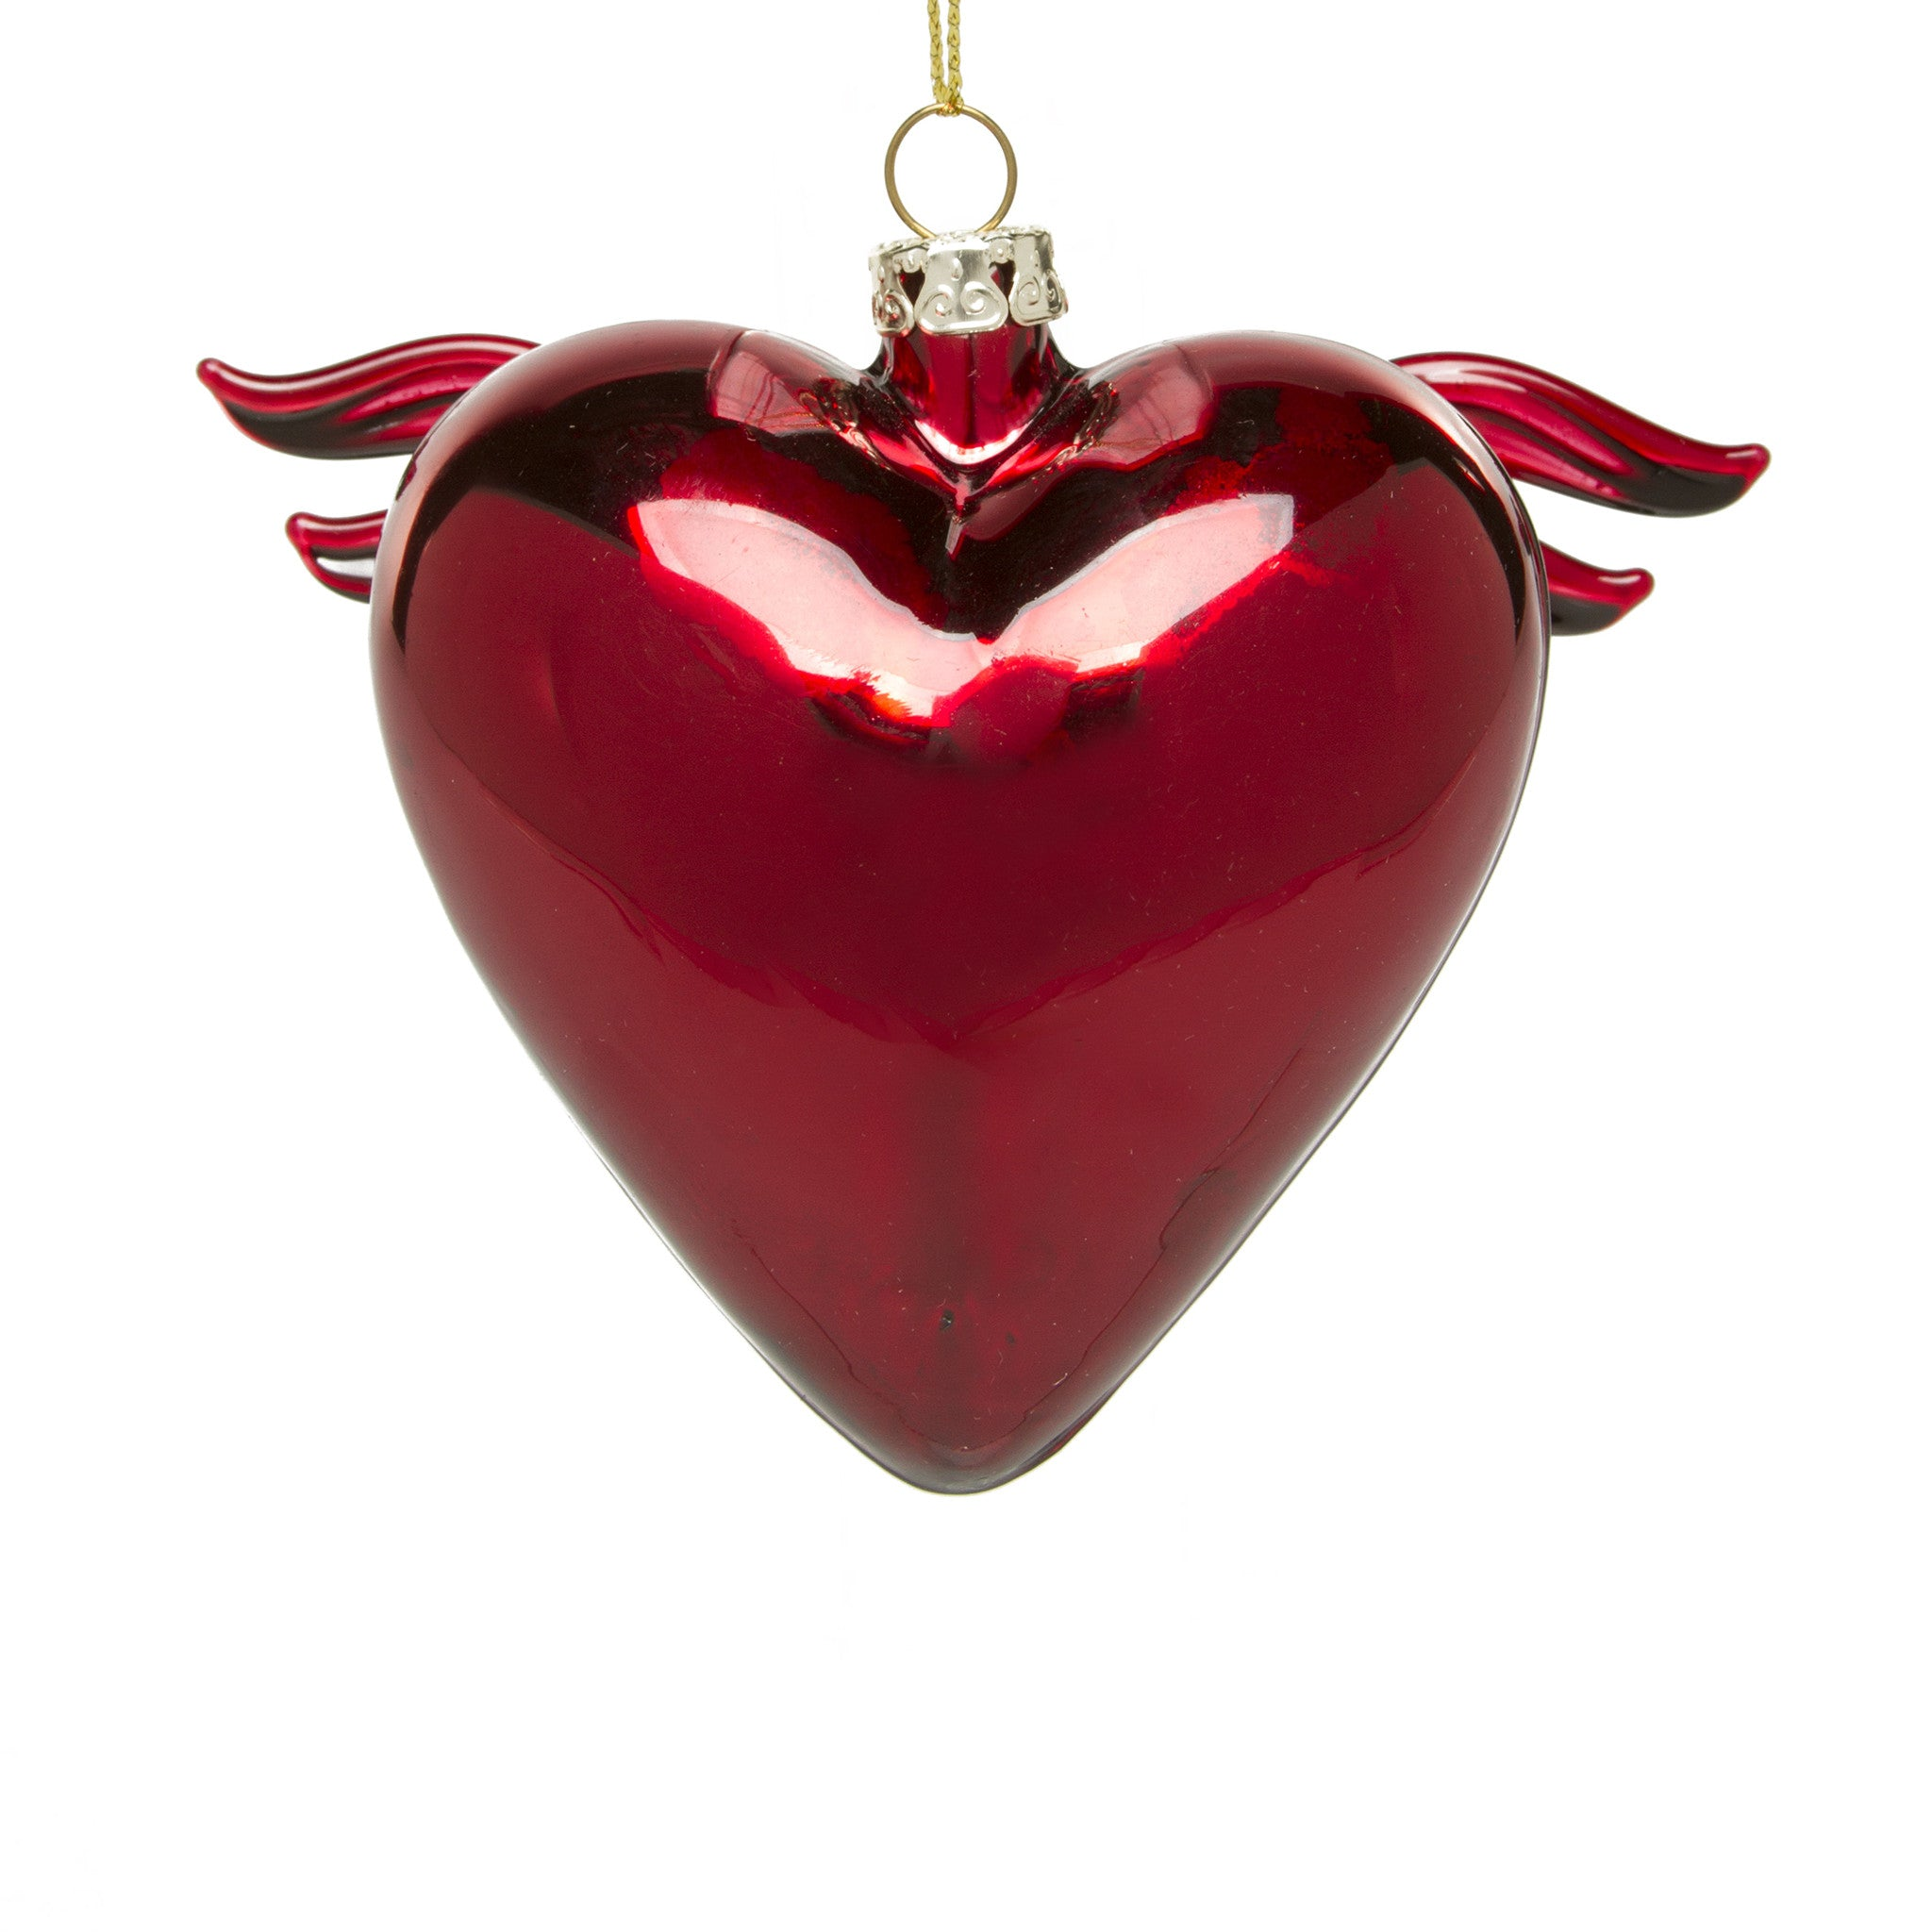 Glass heart christmas ornaments - Glass Heart With Wings Ornament Red